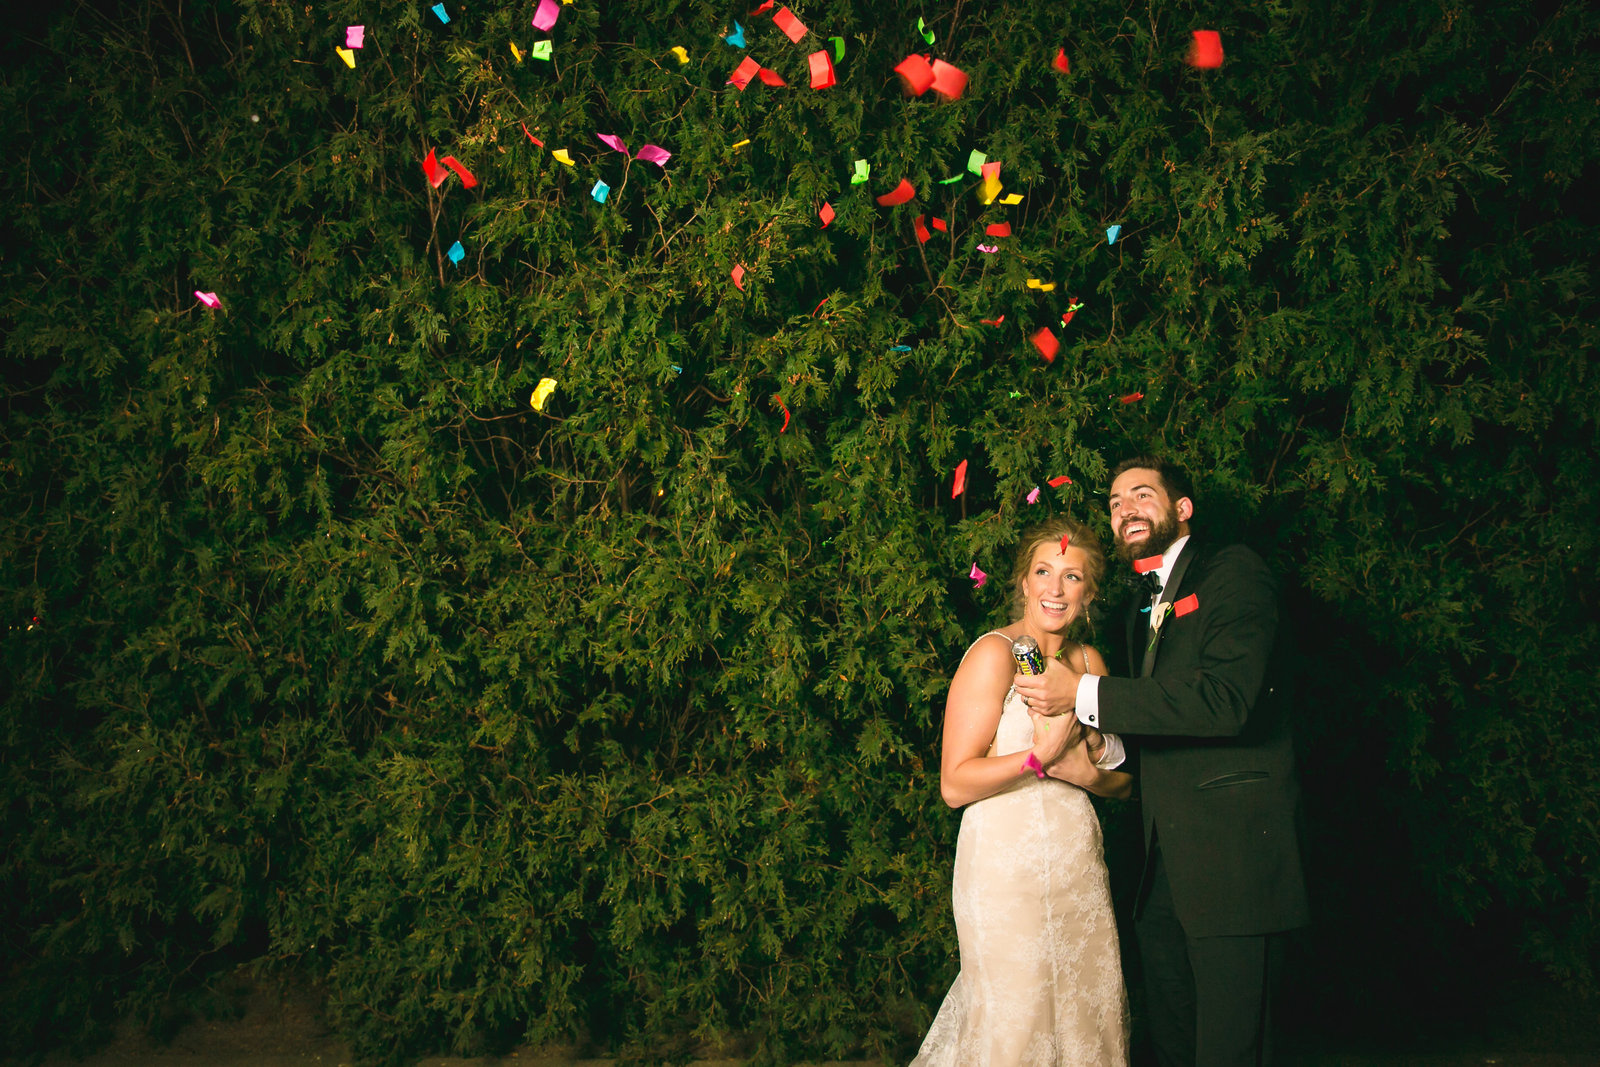 Will-and-Amanda's-New-Years-Eve-Wedding-Photos-by-Amenson-Studio-0311